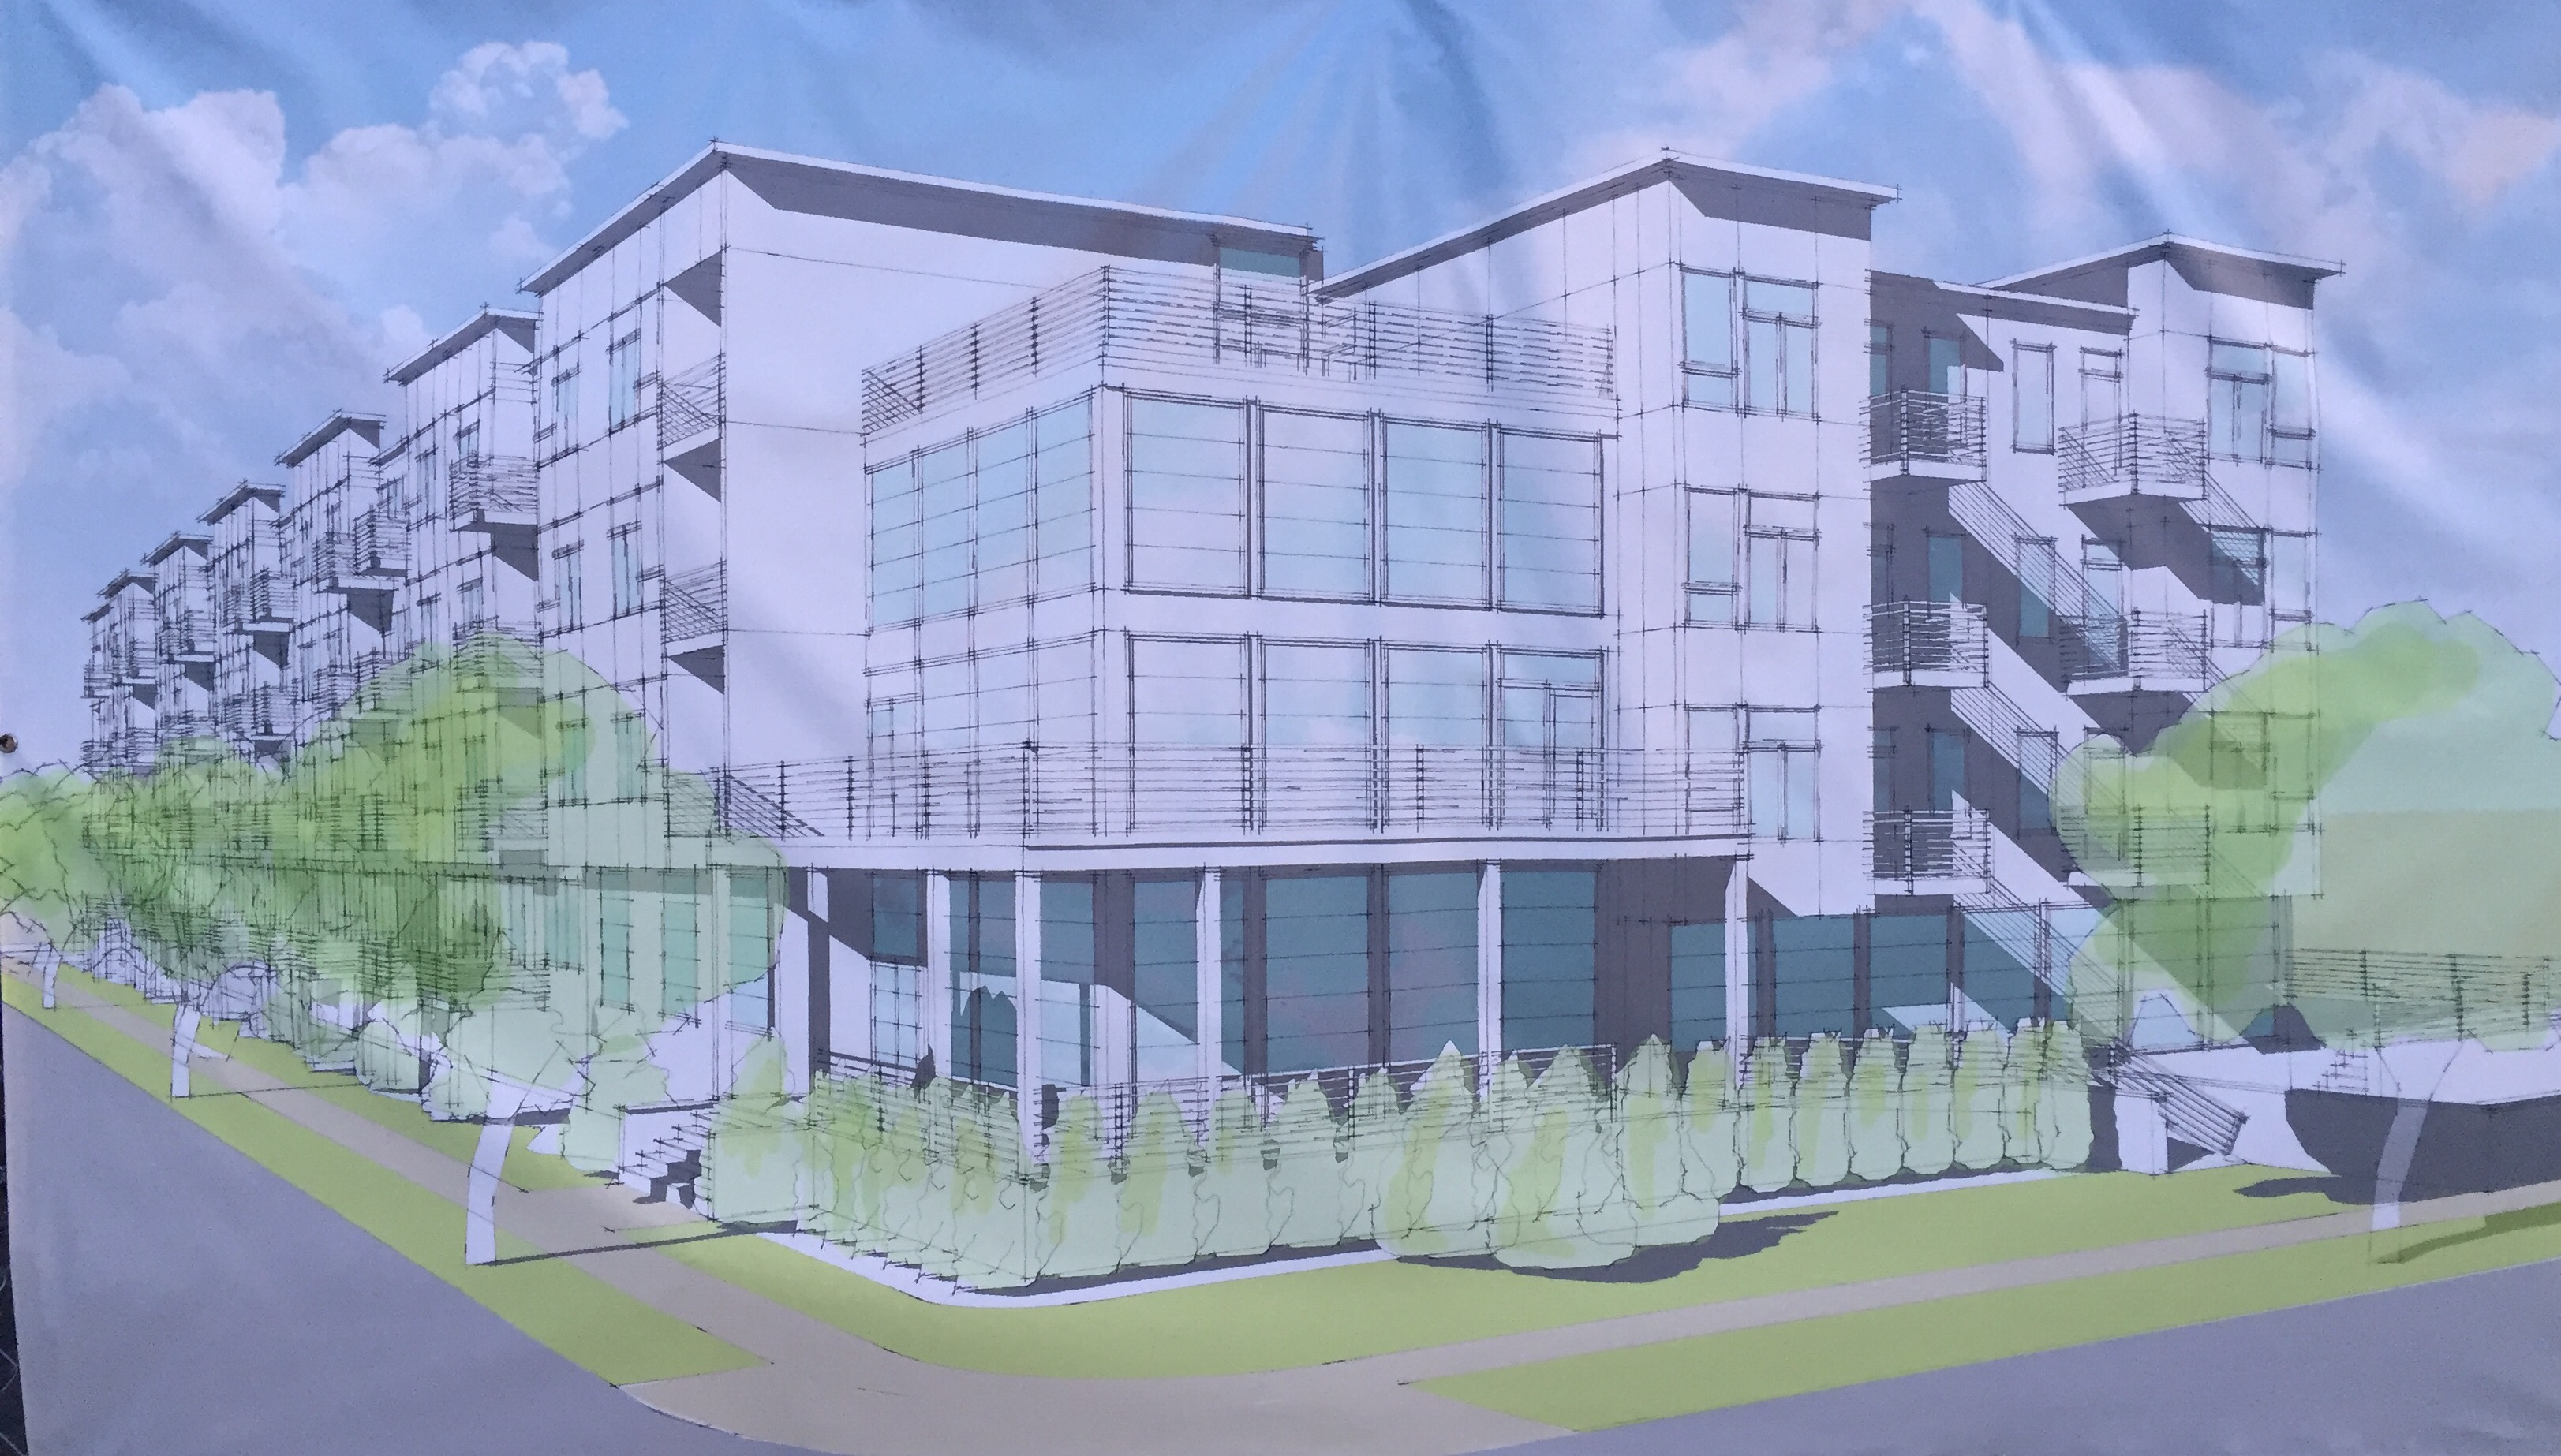 A rendering of the future Seaside Senior Apartments, planned for bay Boulevard in Seaside Heights. (Photo: Daniel Nee)